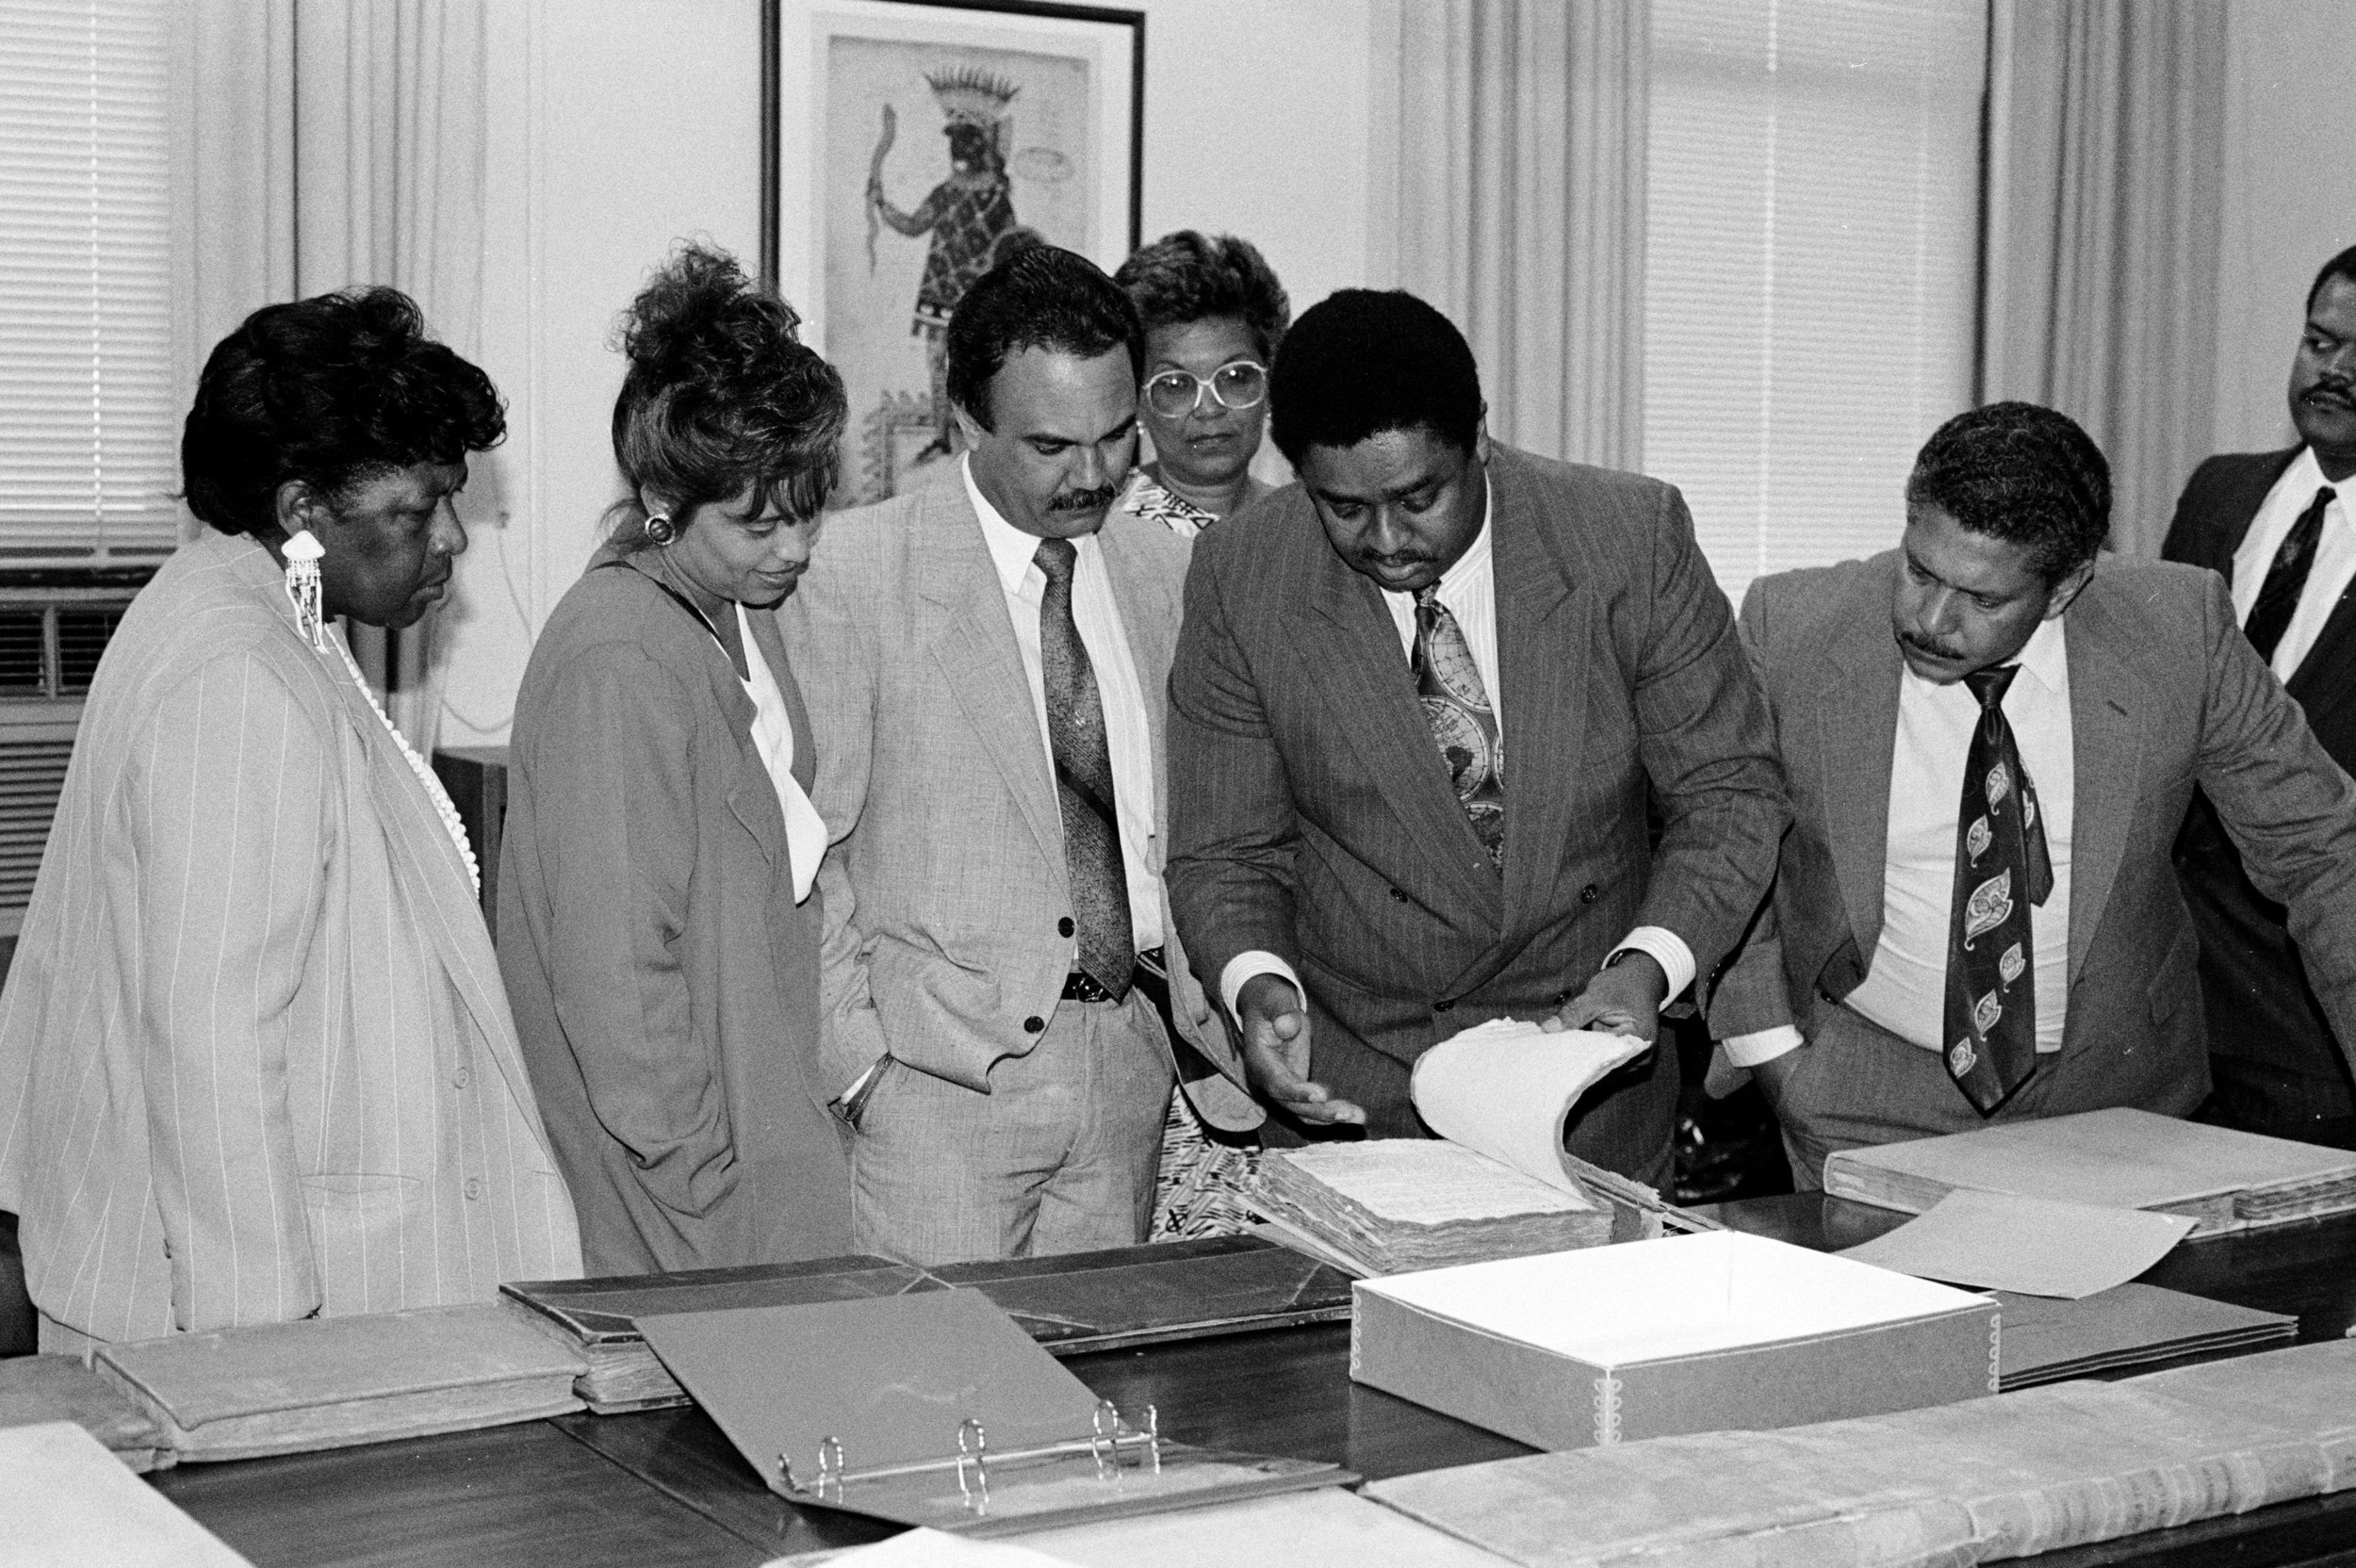 Idilio Gracia Peña showing visitors early City records during an open house, June 7, 1991.